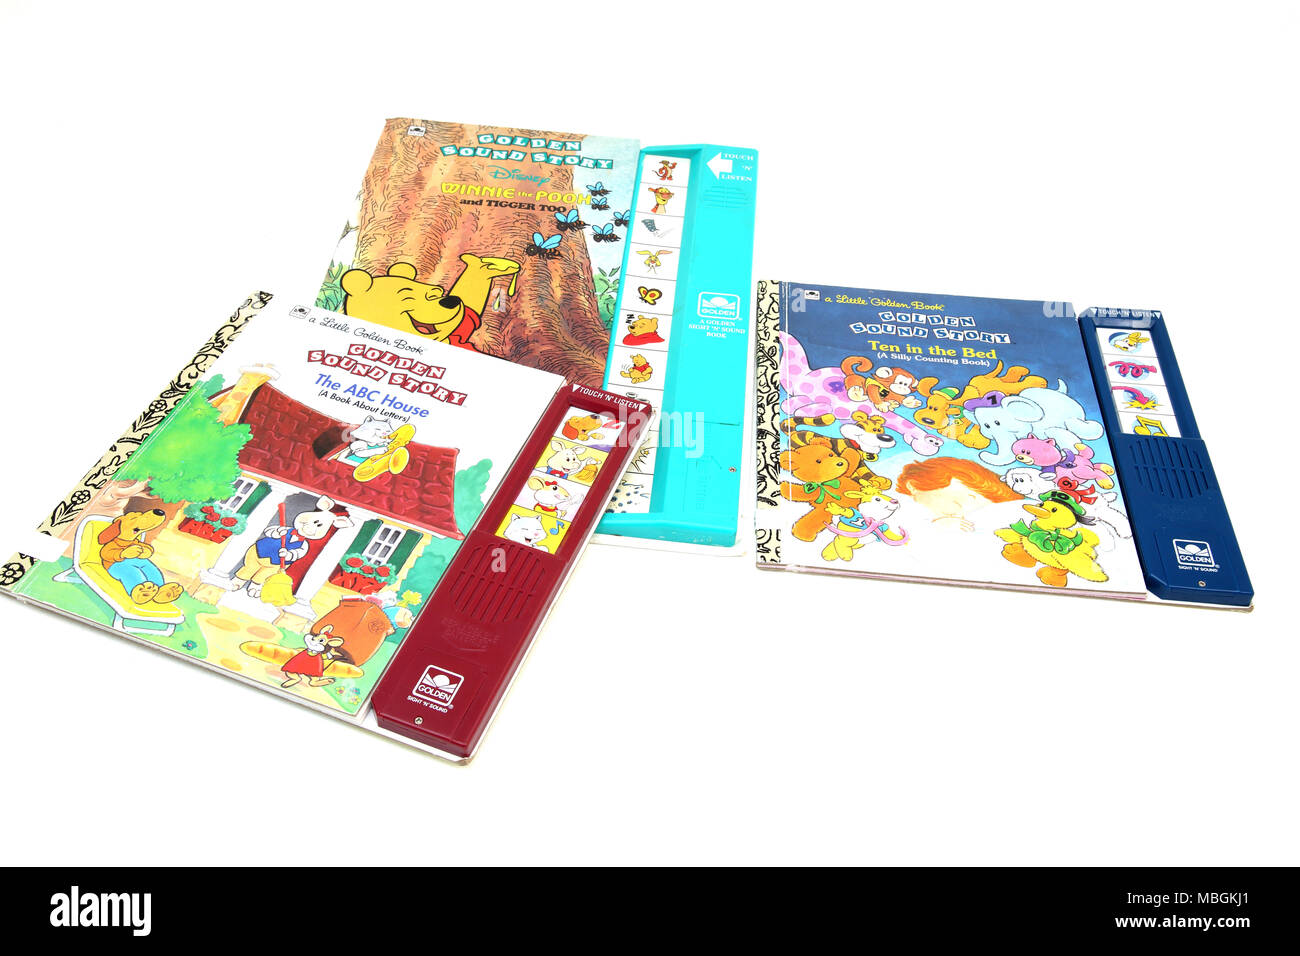 Children Golden Sound Story Books - Ten in a Bed, The ABC House and Disney Winnie the Pooh and Tigger Too - Stock Image